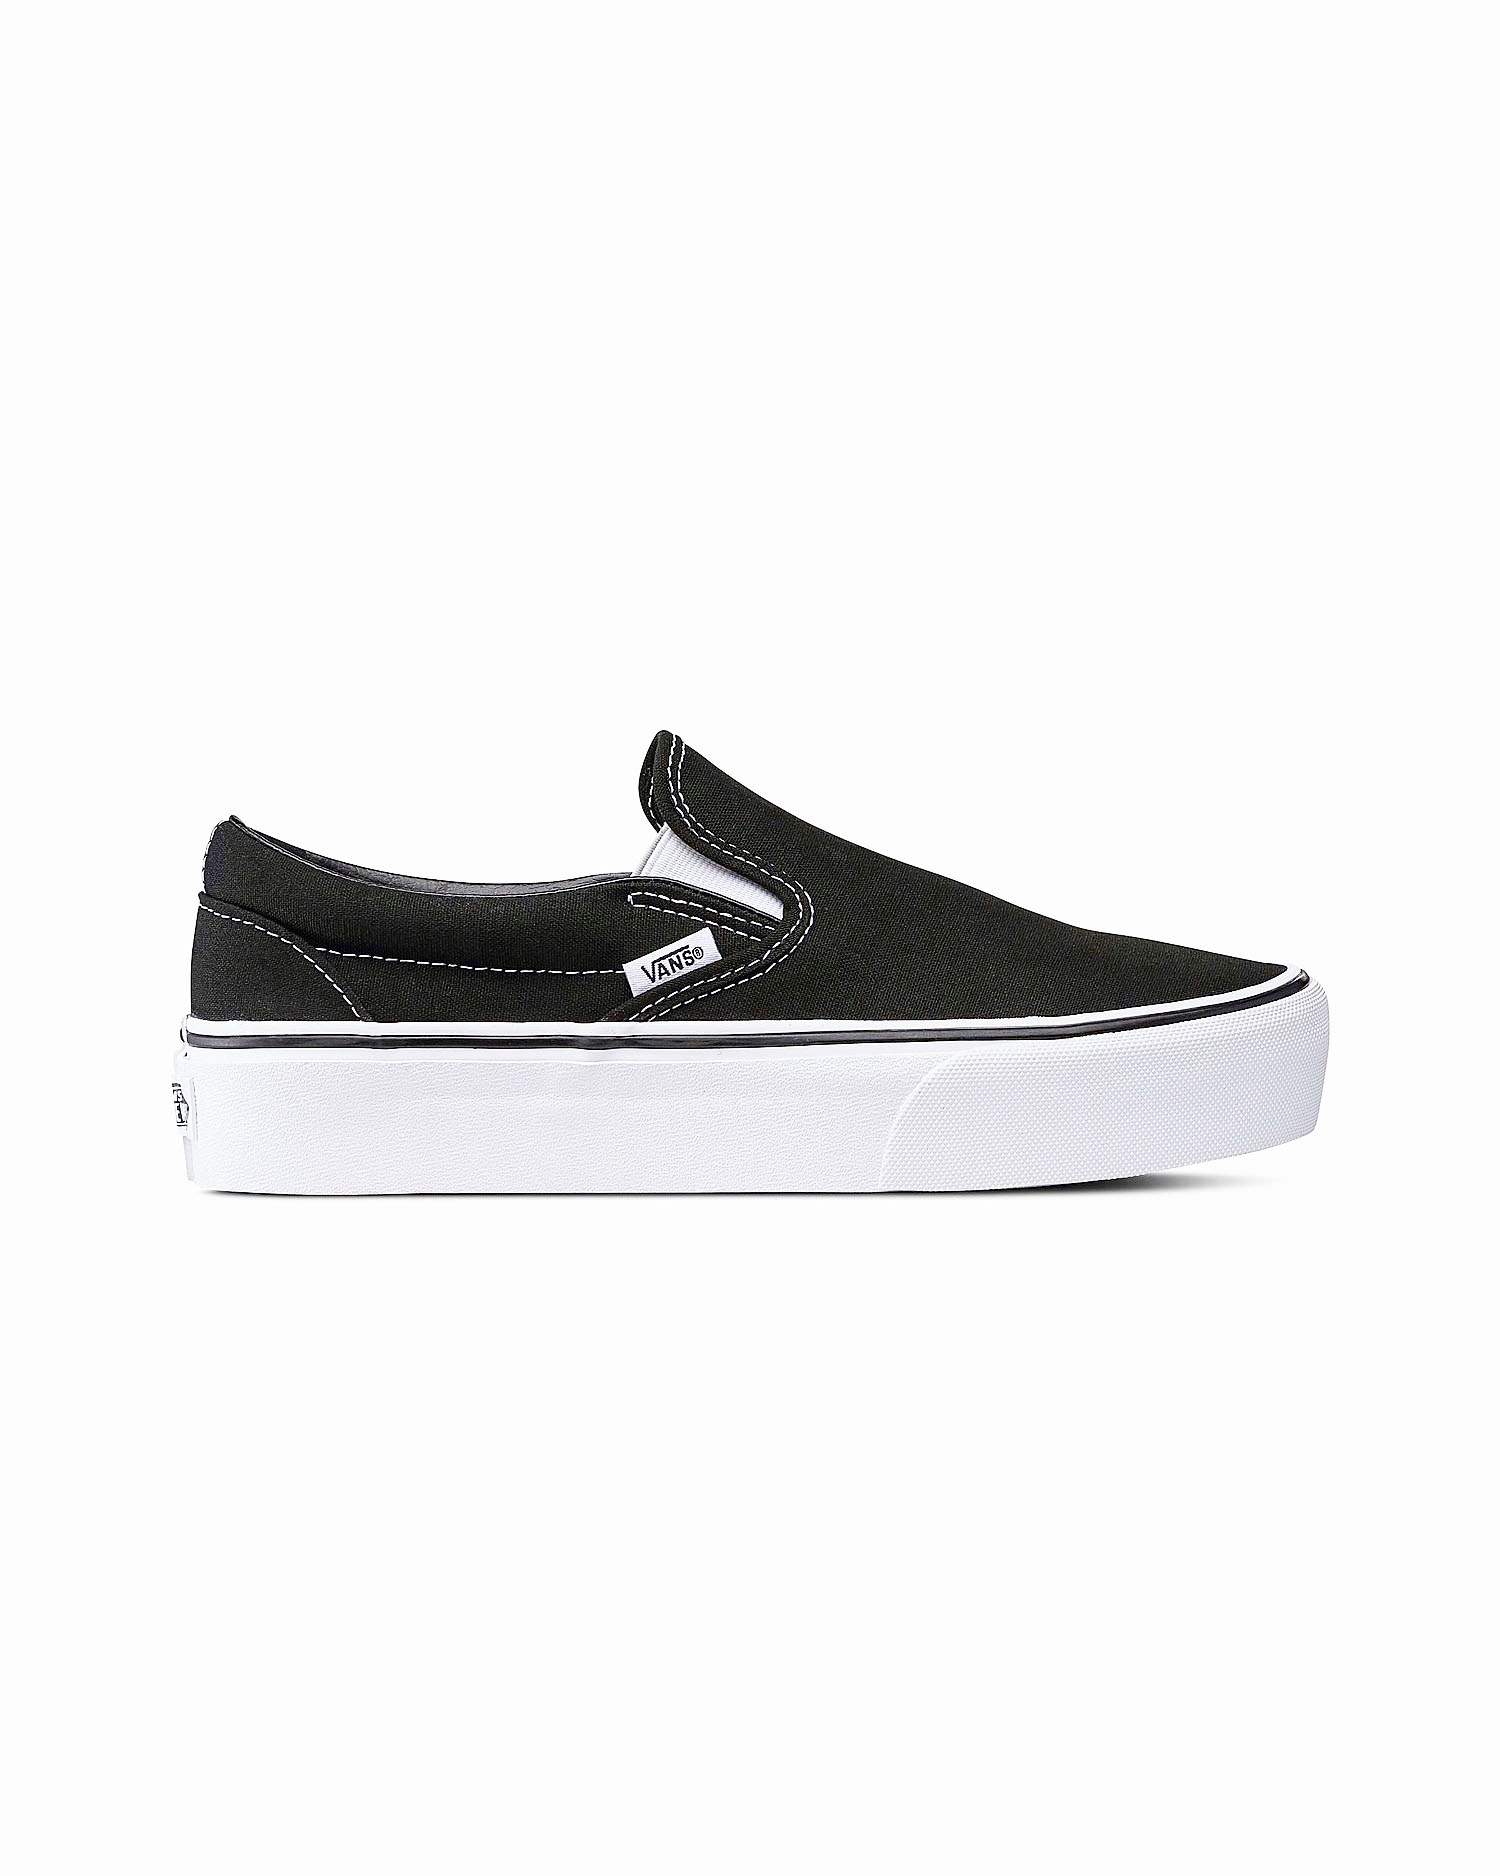 Vans - Classic Slip-On Platform Black 37